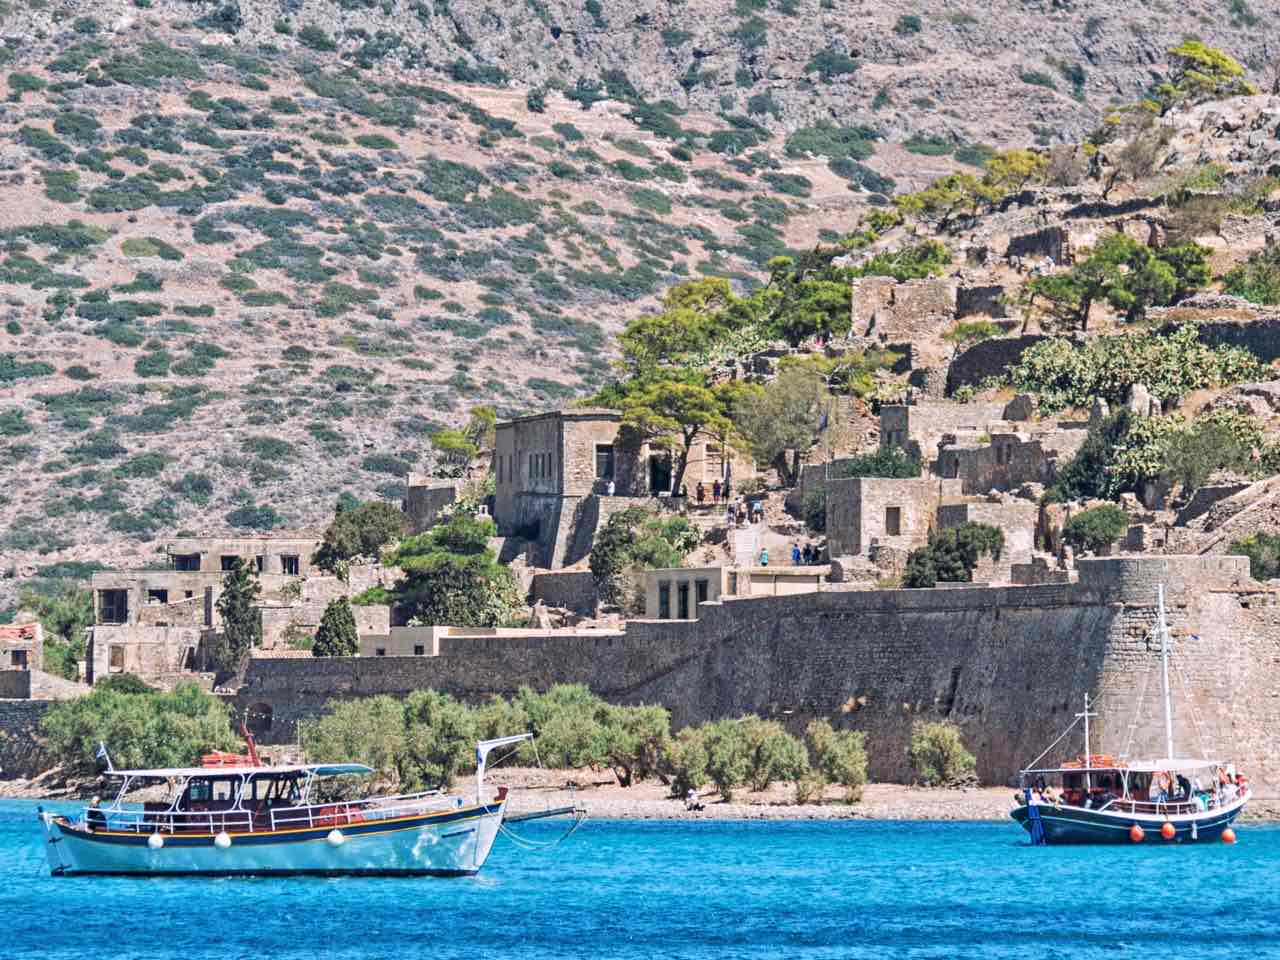 Calls for Minoan Civilization, Spinalonga to be Named UNESCO World Heritage Sites